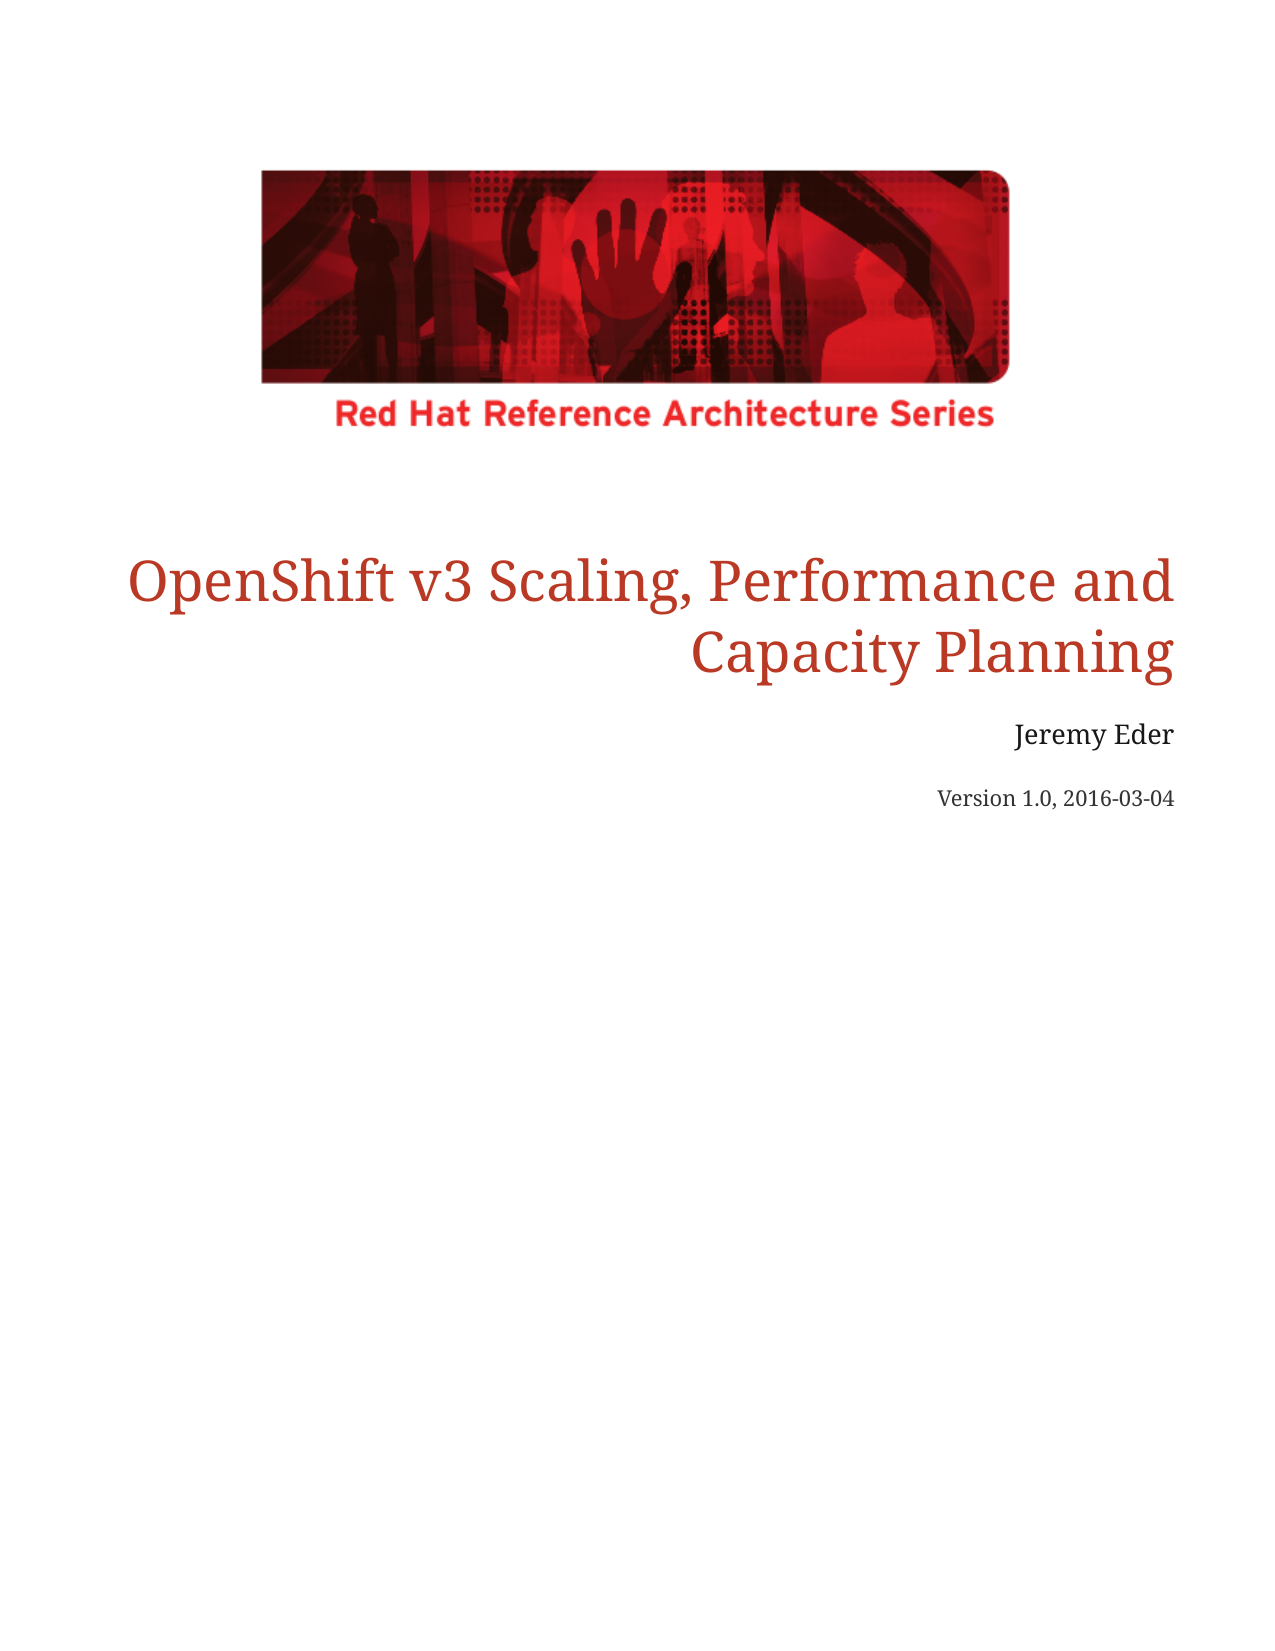 OpenShift v3 Scaling, Performance and Capacity Planning